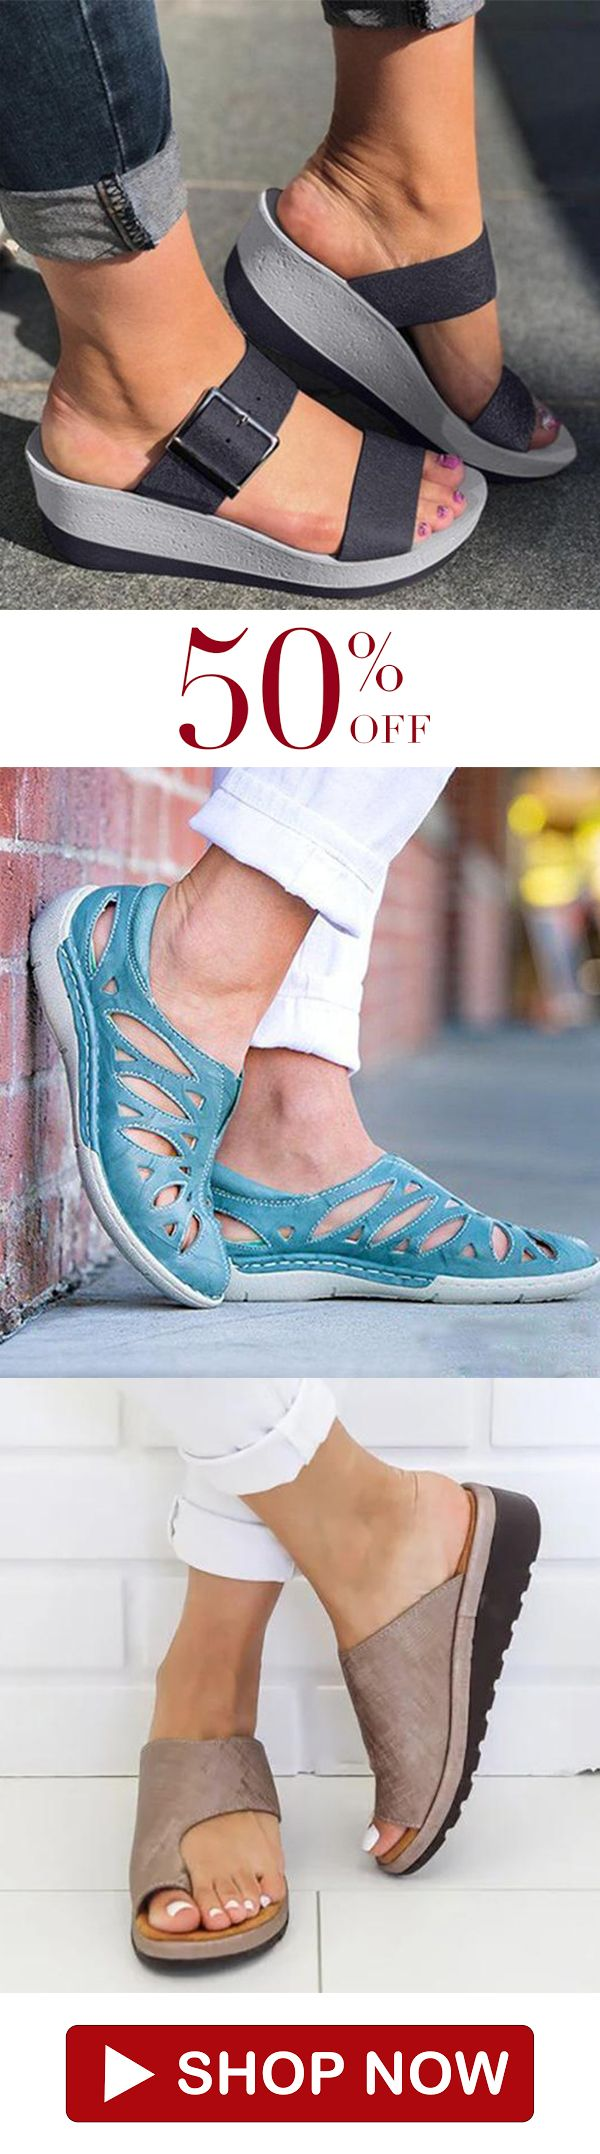 Daily Solid Color Open Toe Sandals is part of Shoes -